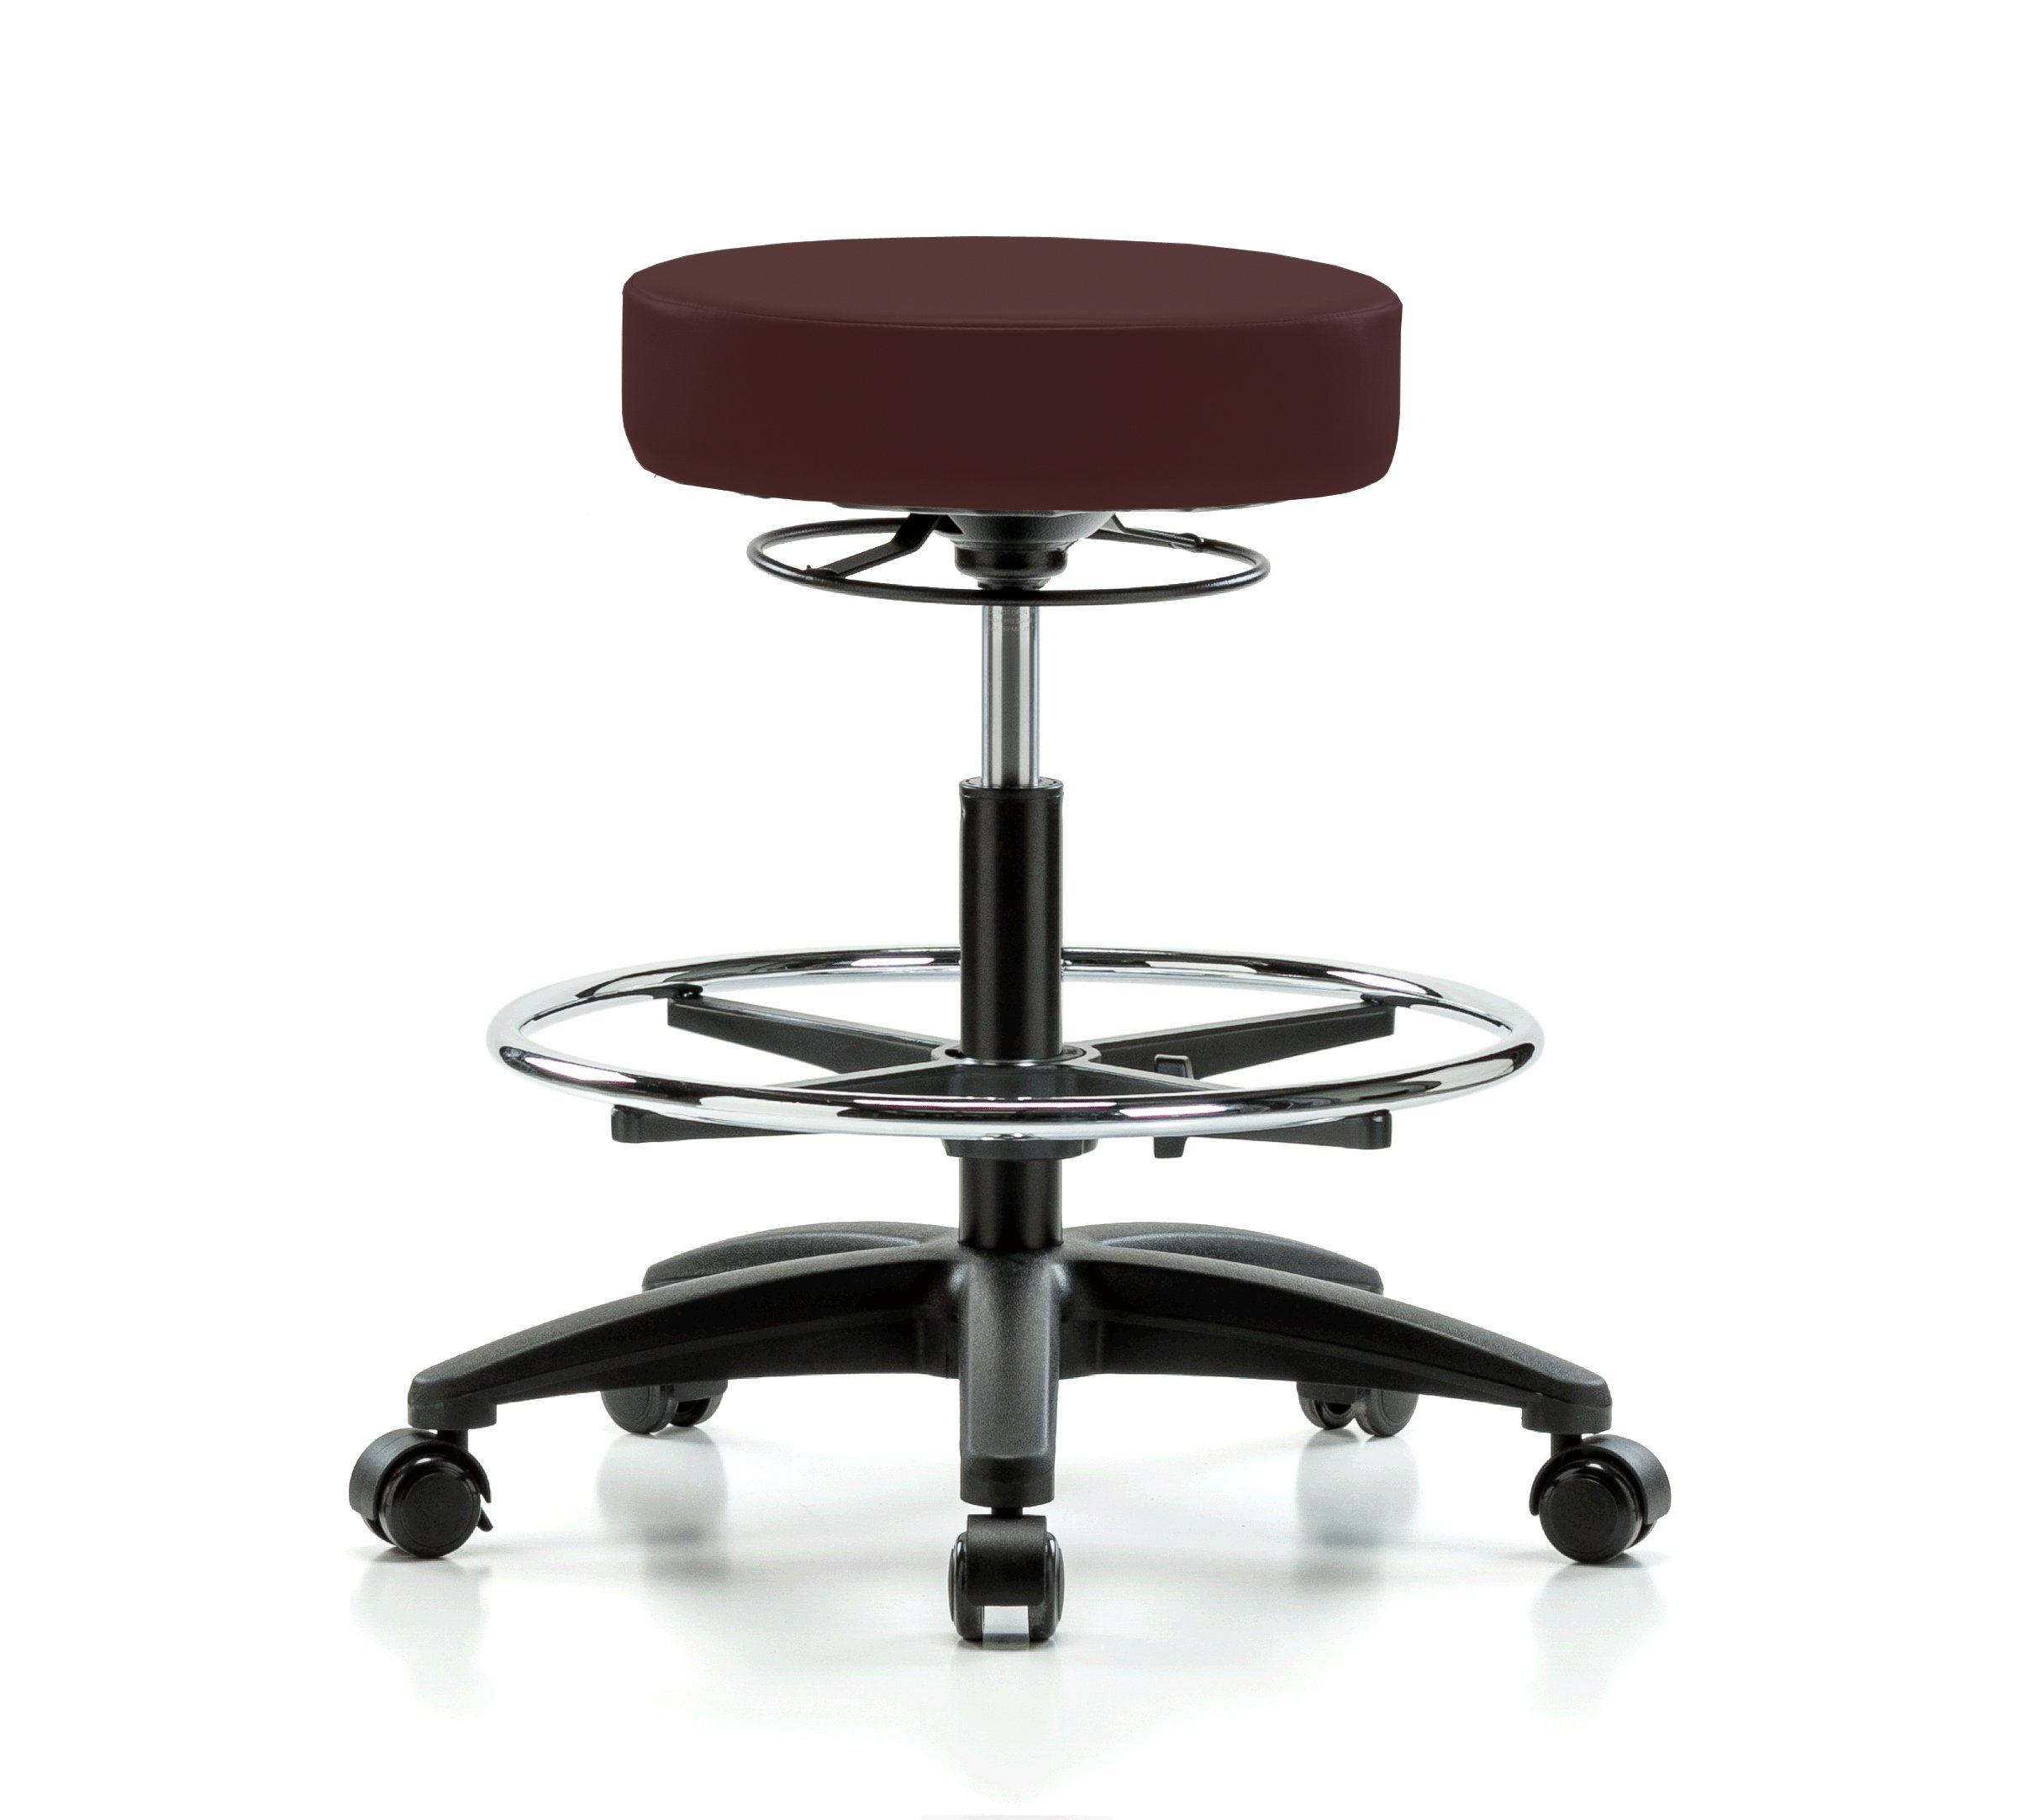 Perch Life Rolling Height Adjustable Stool With Footring For Lab Medical Office Spa Salon Kitchen Garage 20.5'' - 28'' (Stationary Caps/Burgundy Vinyl)